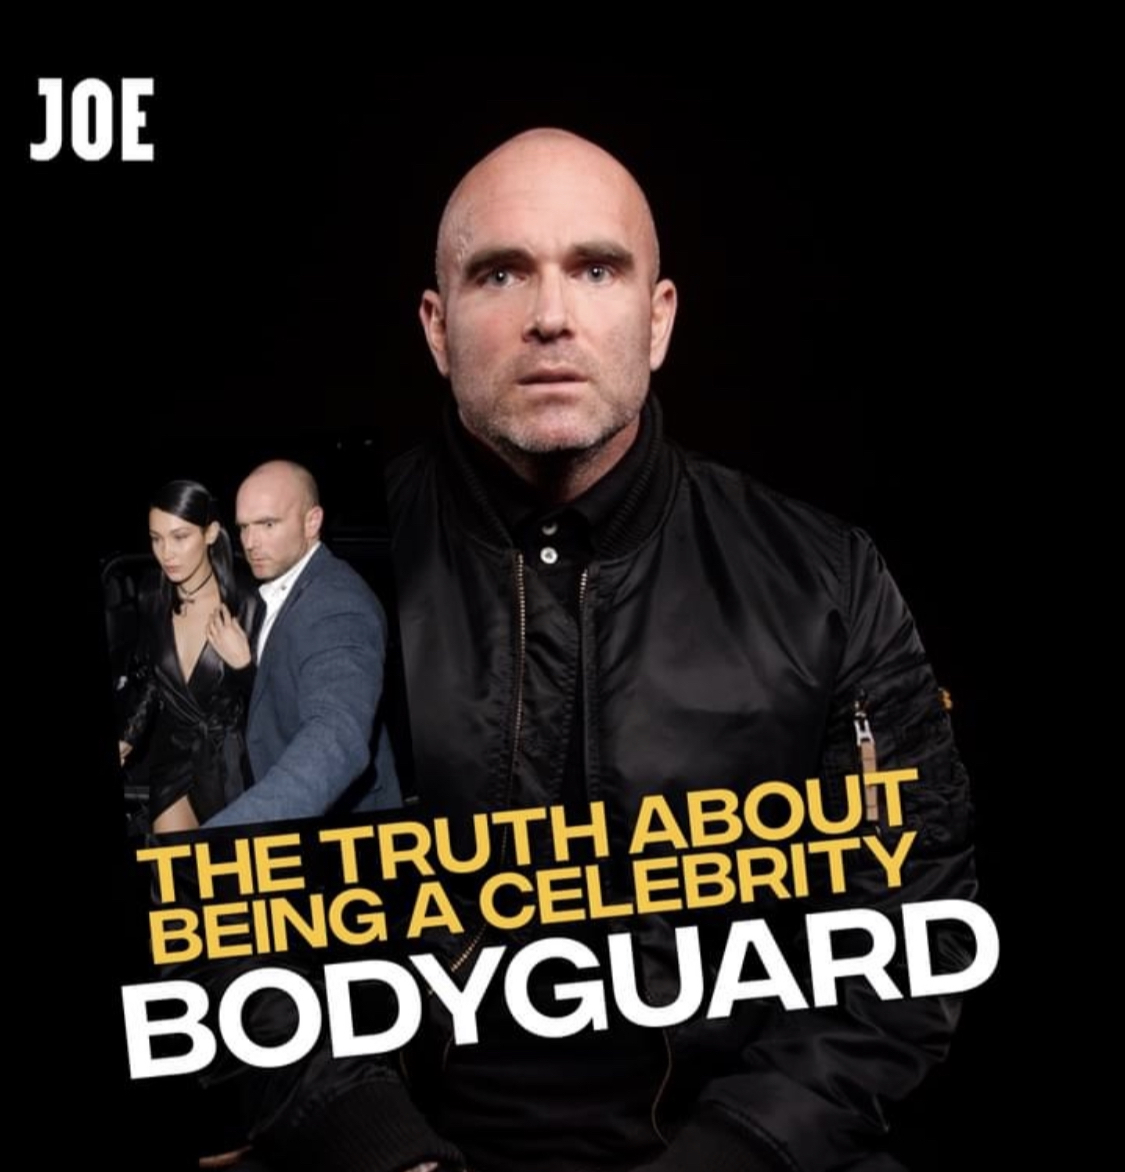 The Truth About Being A Celebrity Bodyguard